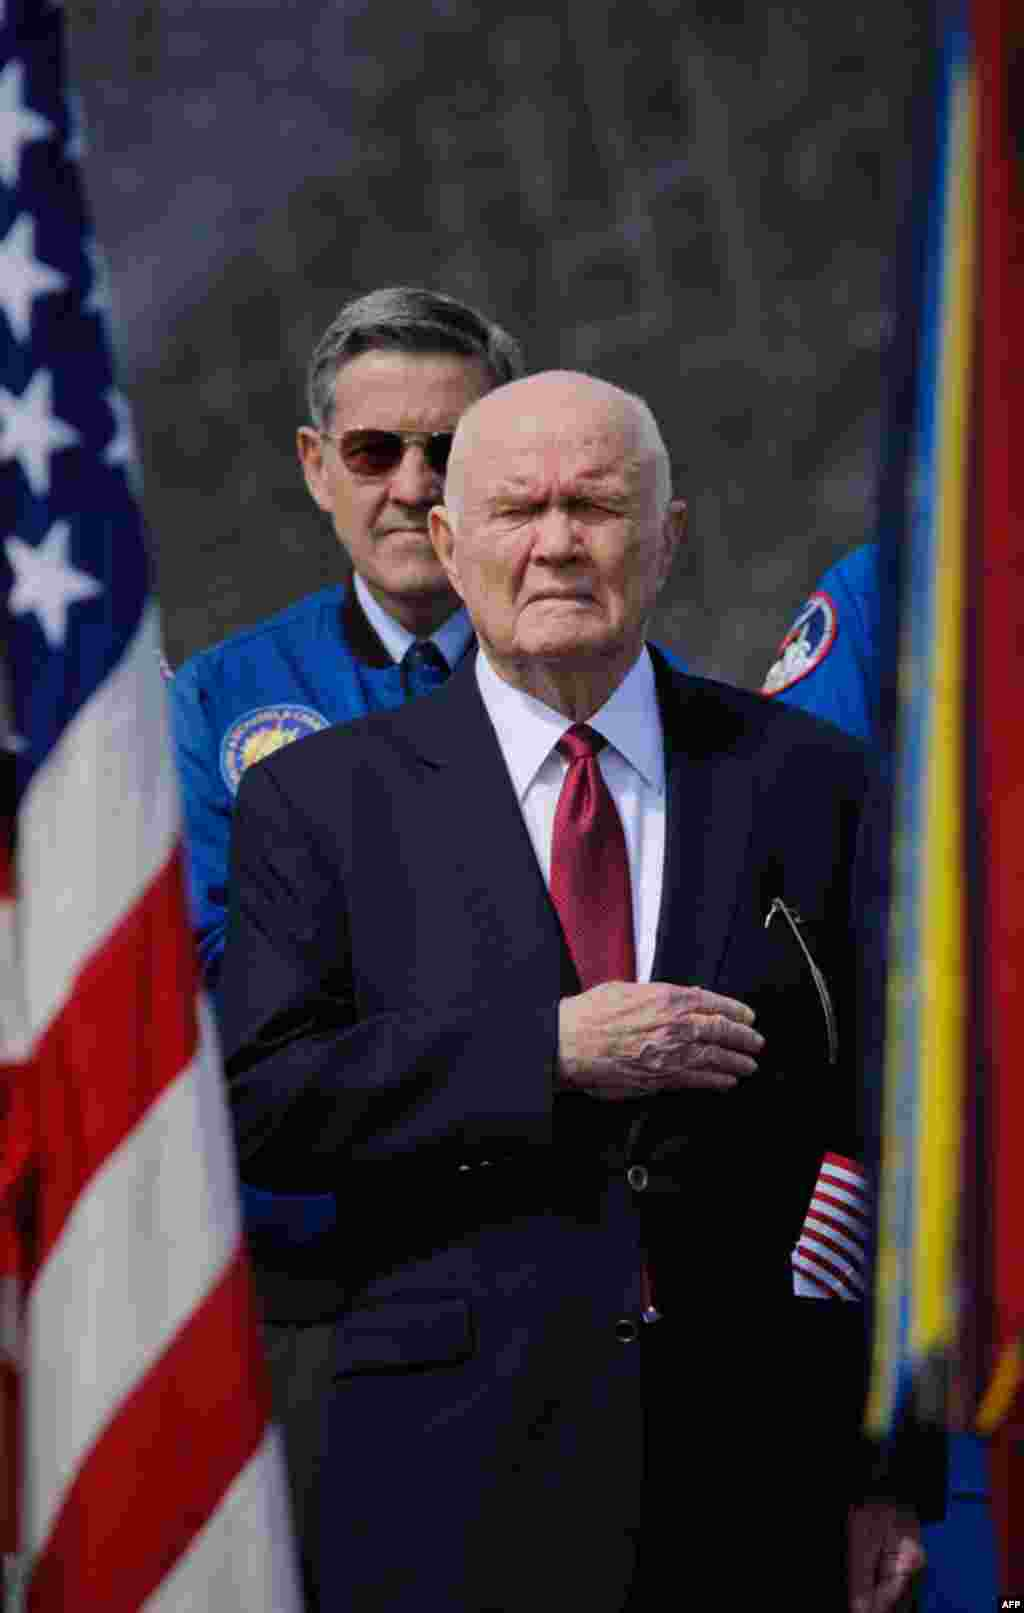 Former astronaut and US Senator John Glenn holds his hand to his heart during the playing of the National Anthem at the transfer ceremony for space shuttle Discovery. (NASA/Paul E. Alers)